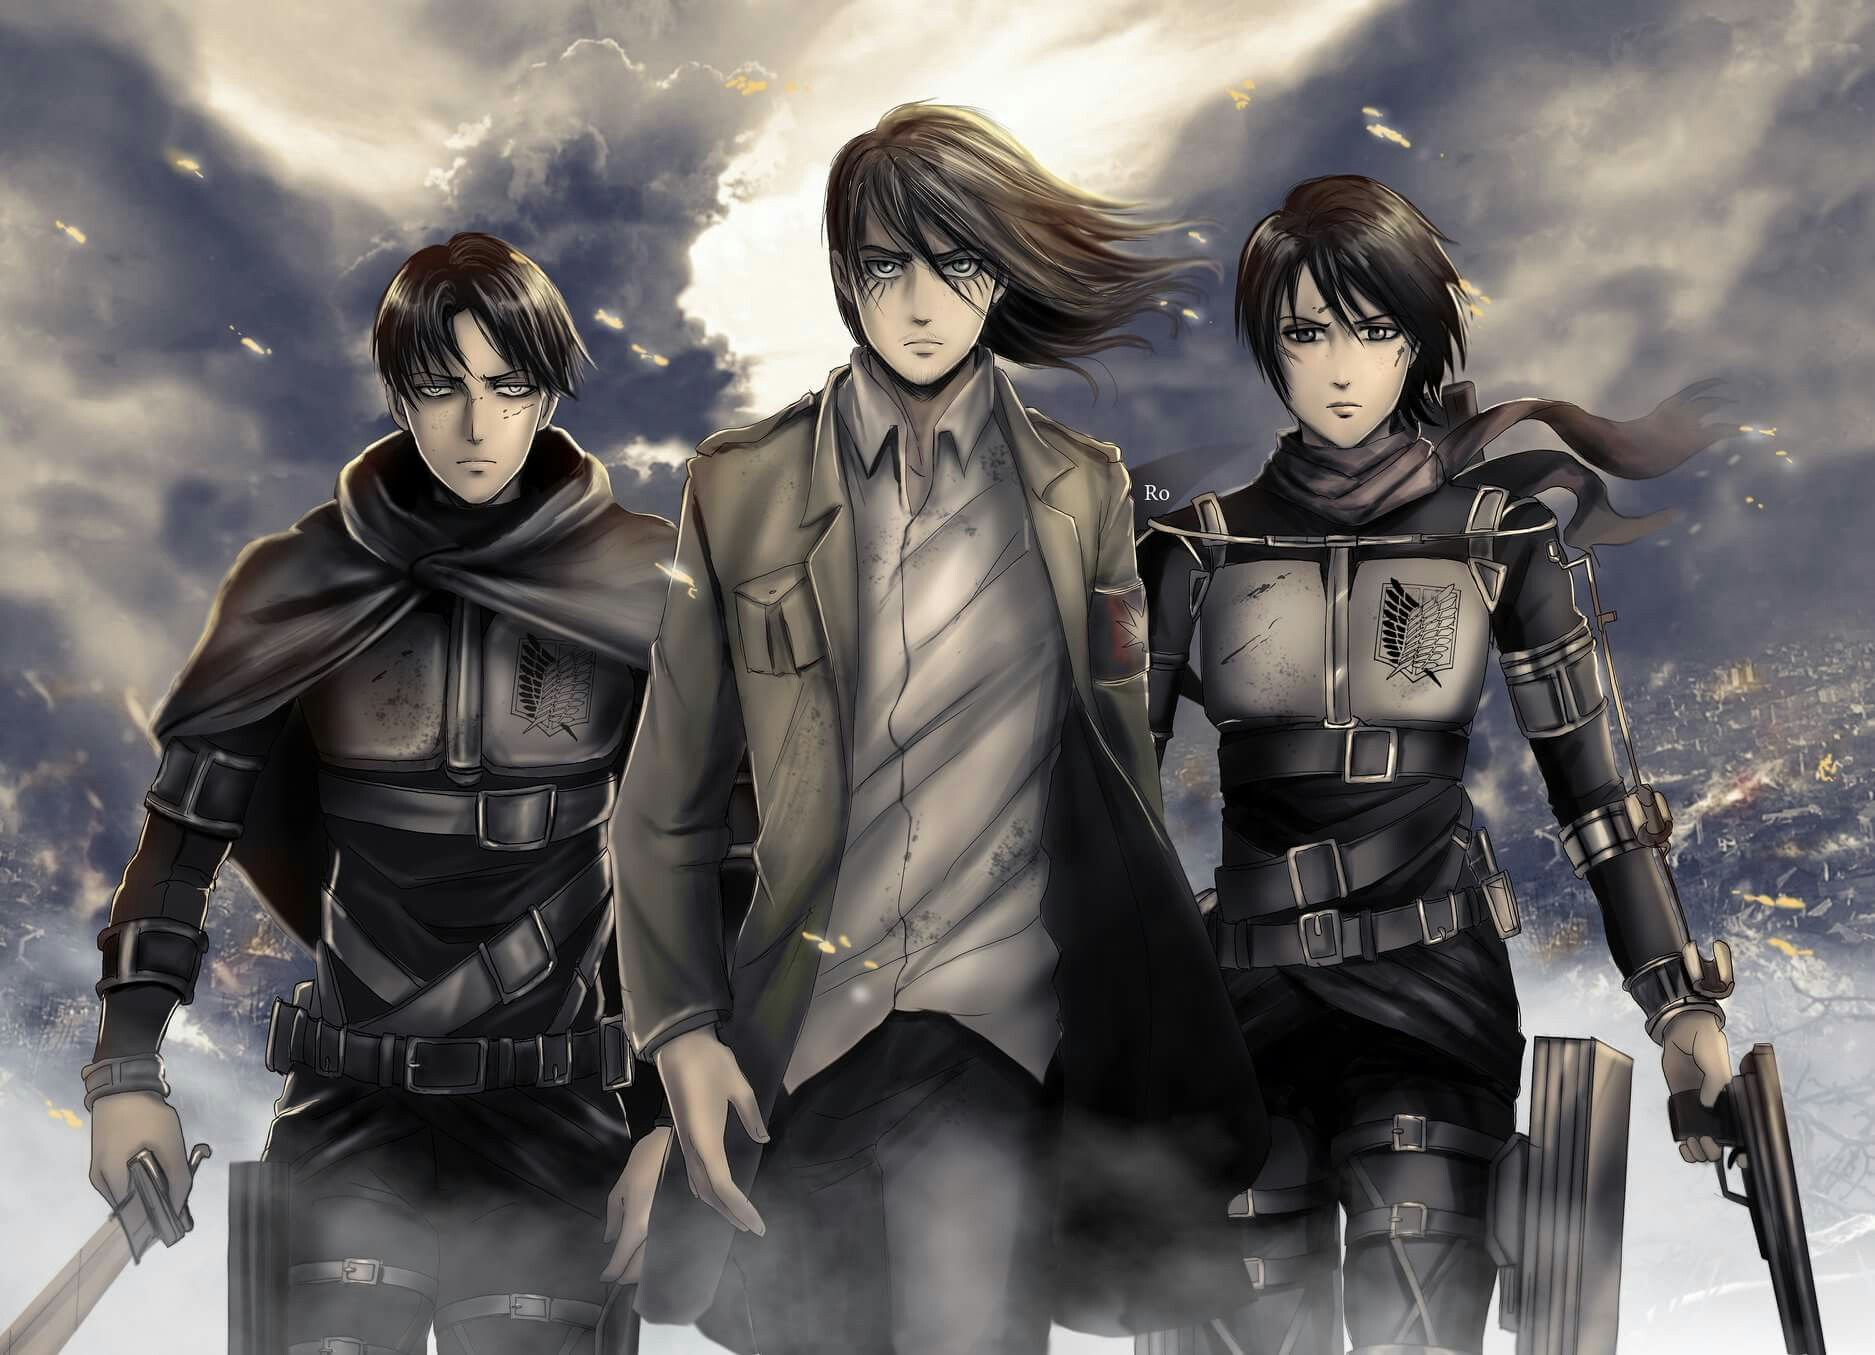 Eren, Mikasa and Levi All grown up and looking even more